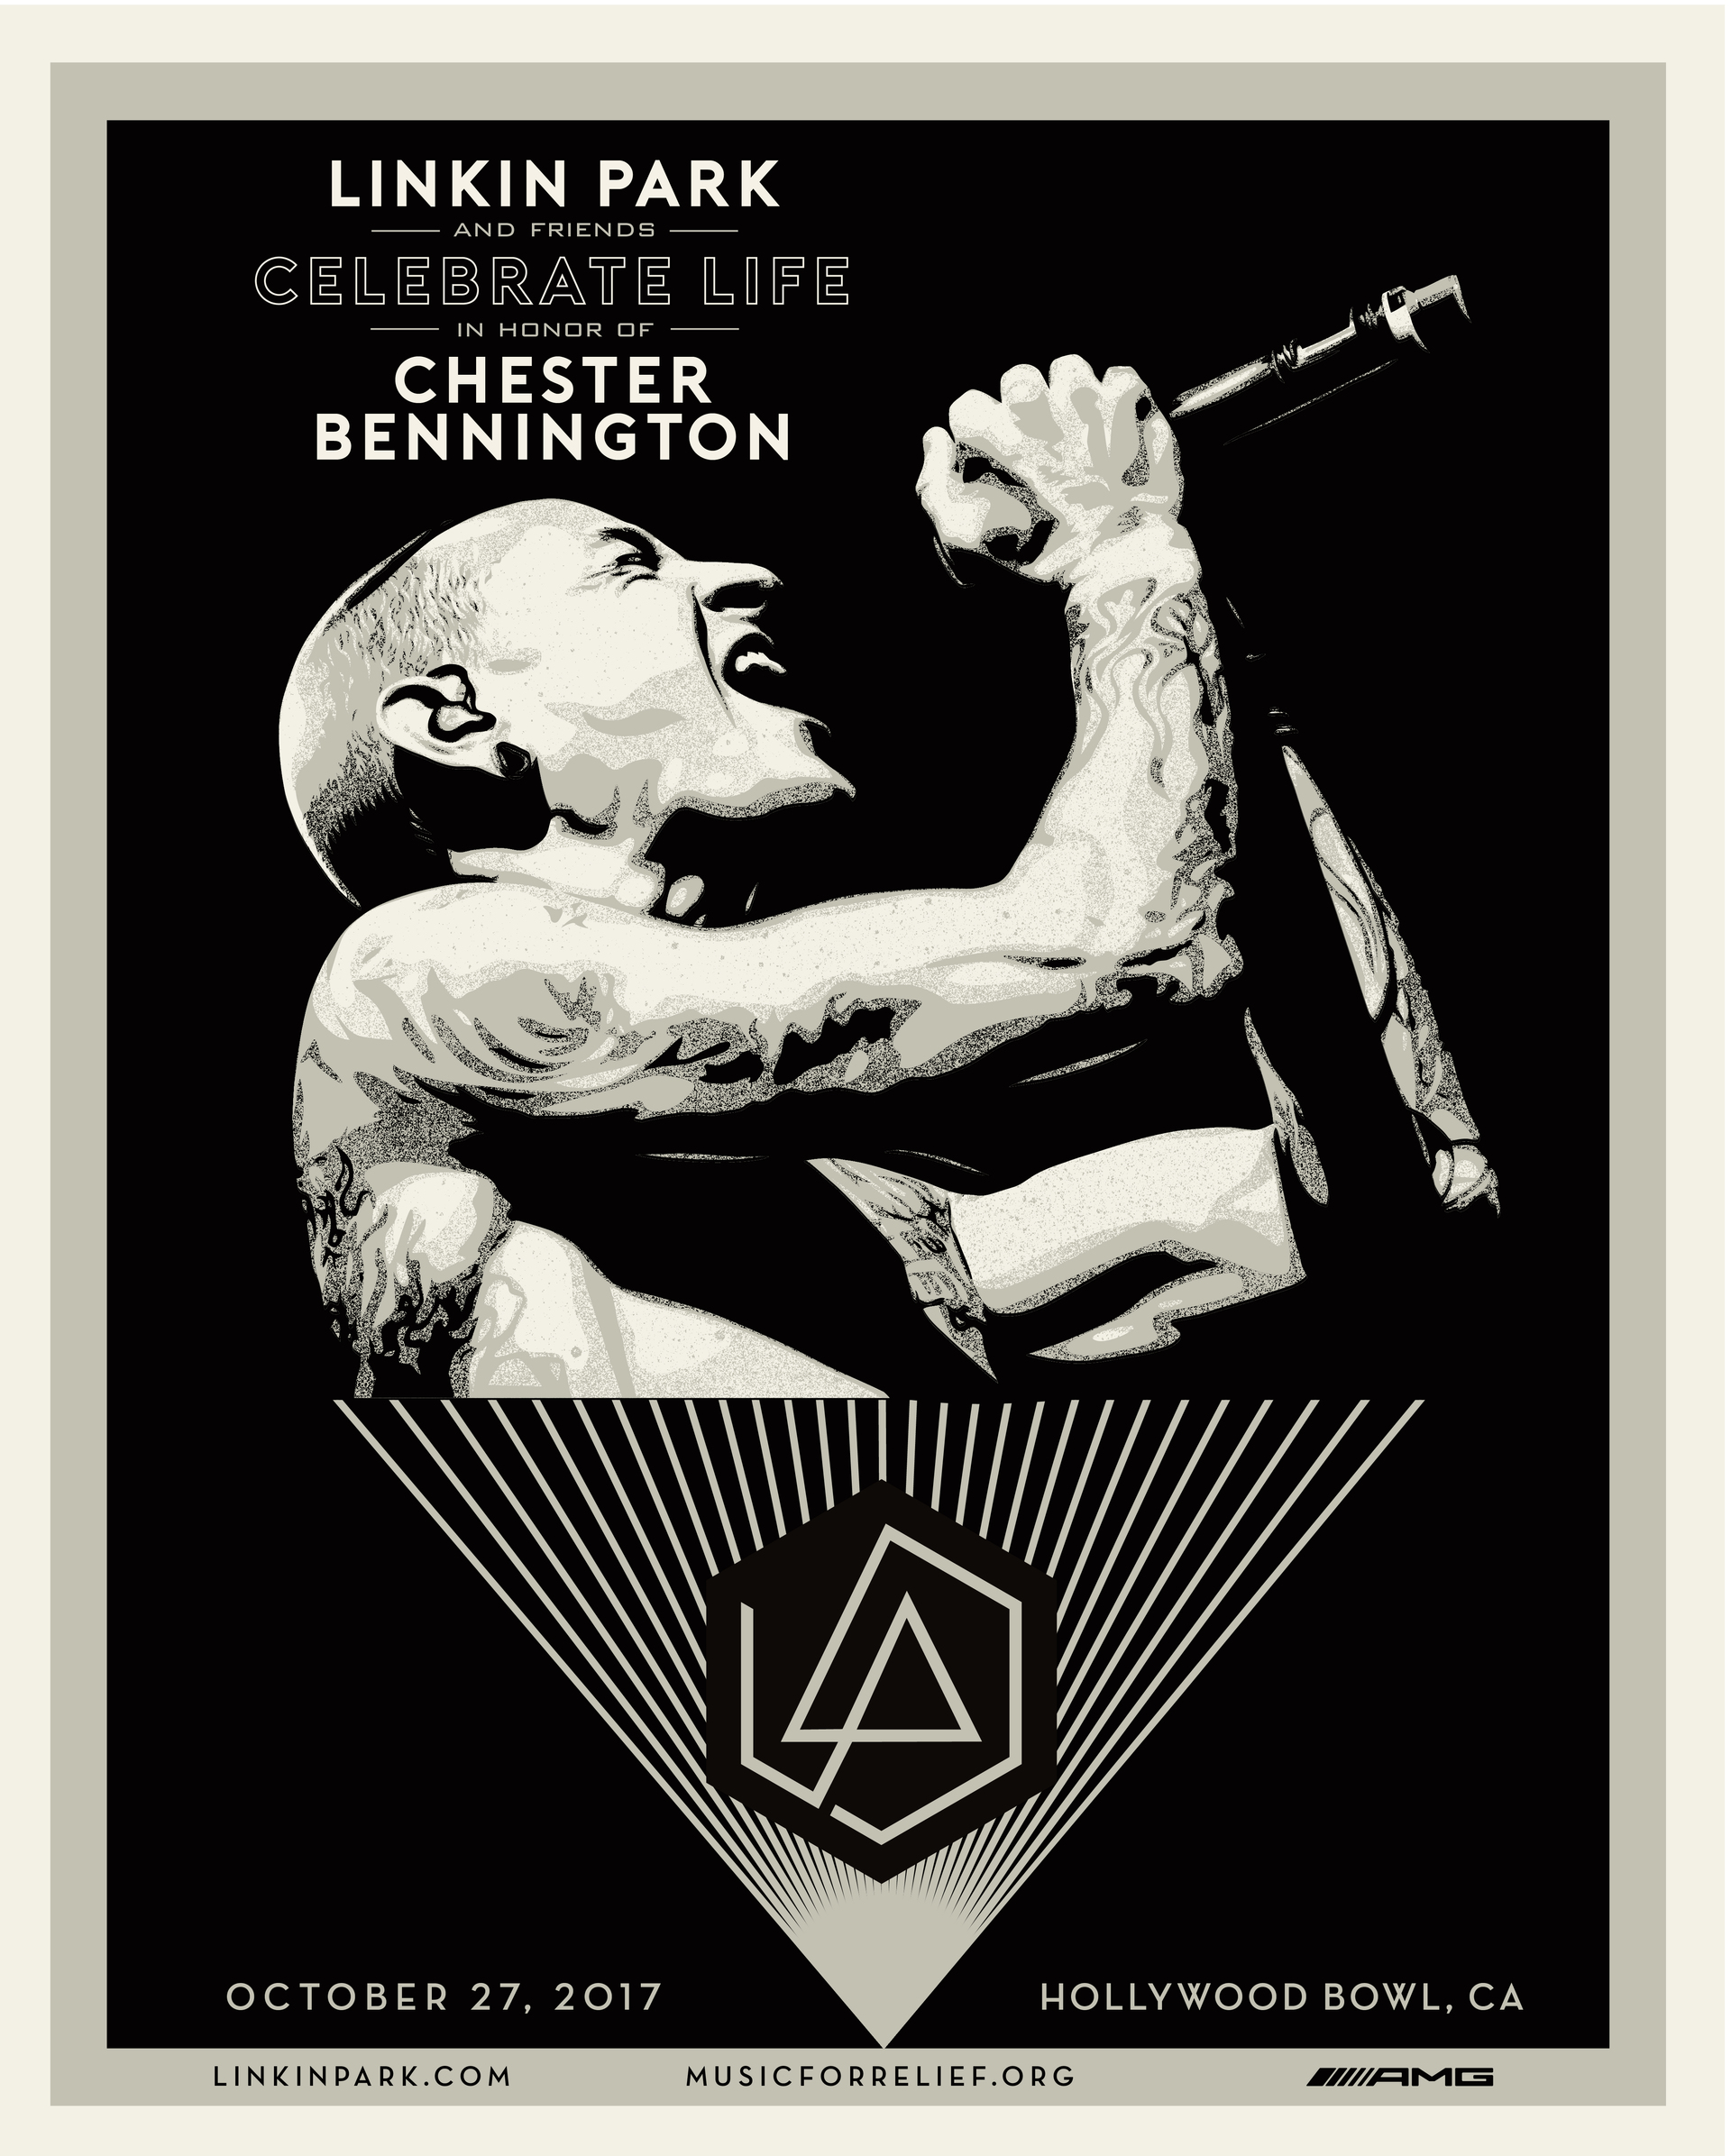 Linkin Park to perform tribute show for Chester Bennington